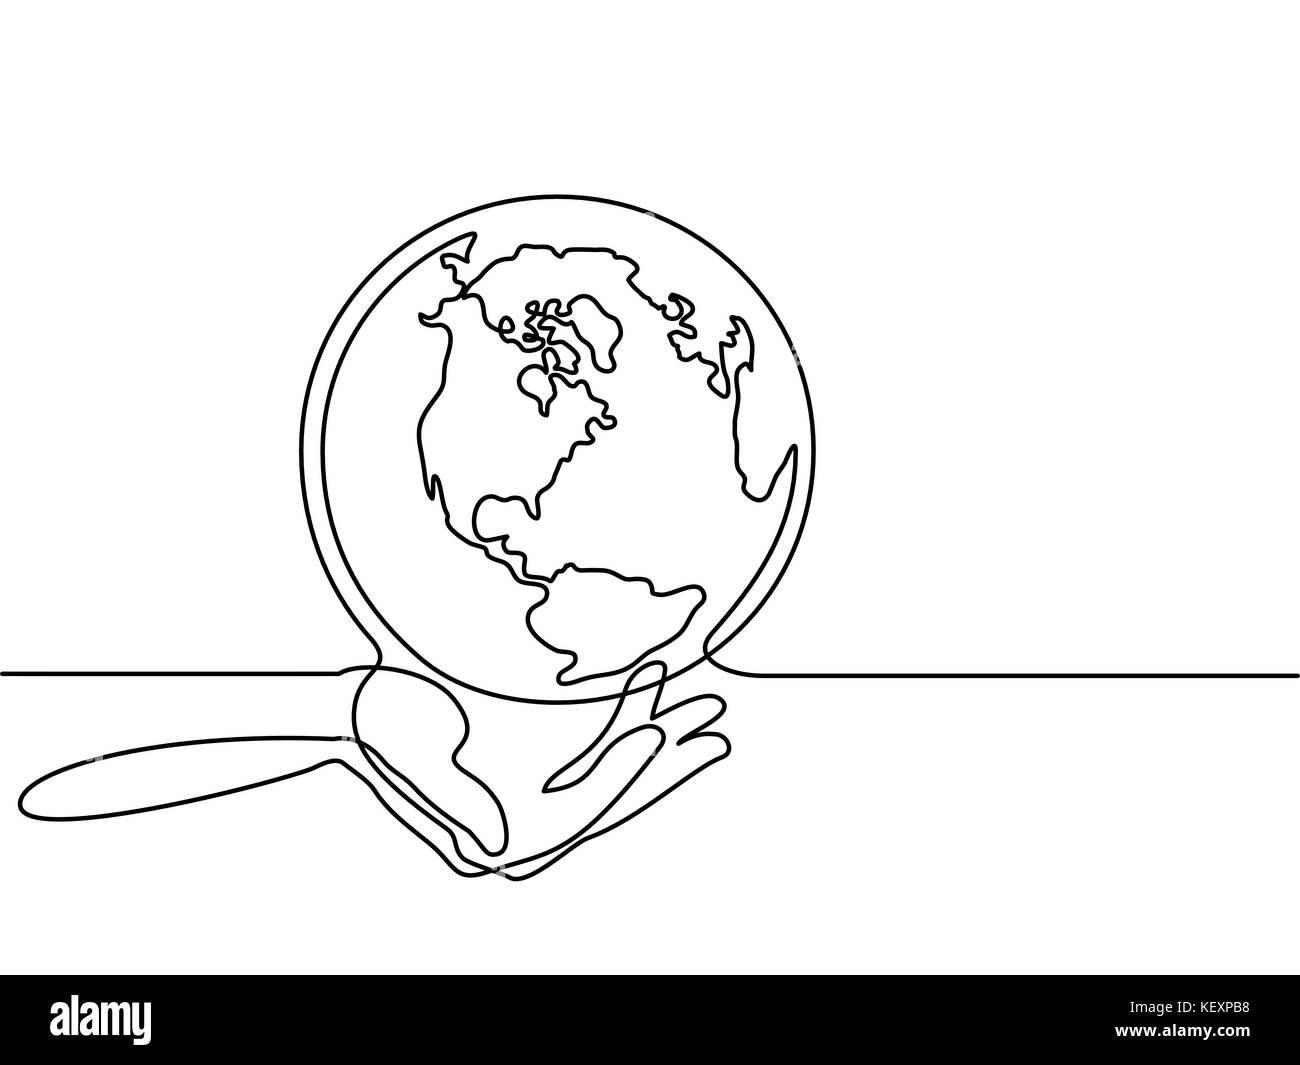 Globe of the Earth in human hands - Stock Image